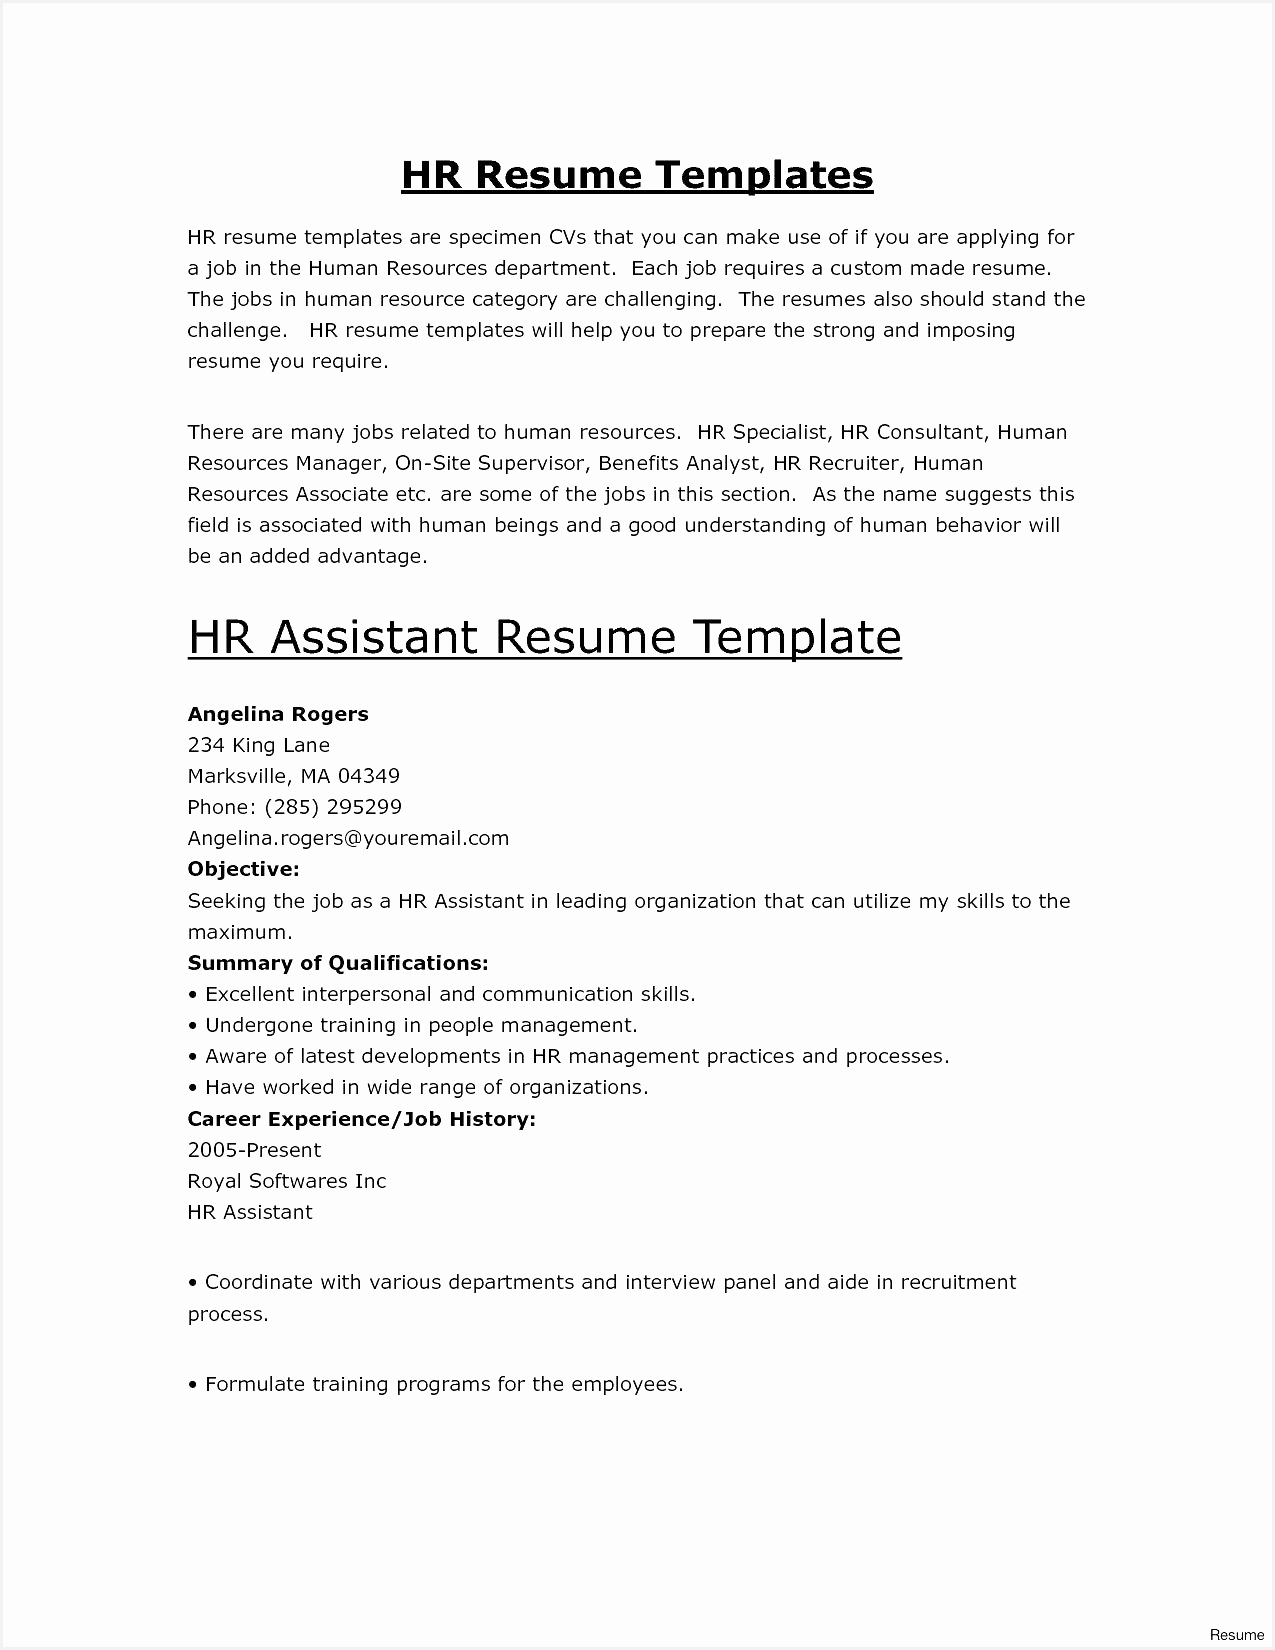 Sales Resume Template Word Beautiful Awesome How Can I Do A Resume Best Resume Examples 0d16501275